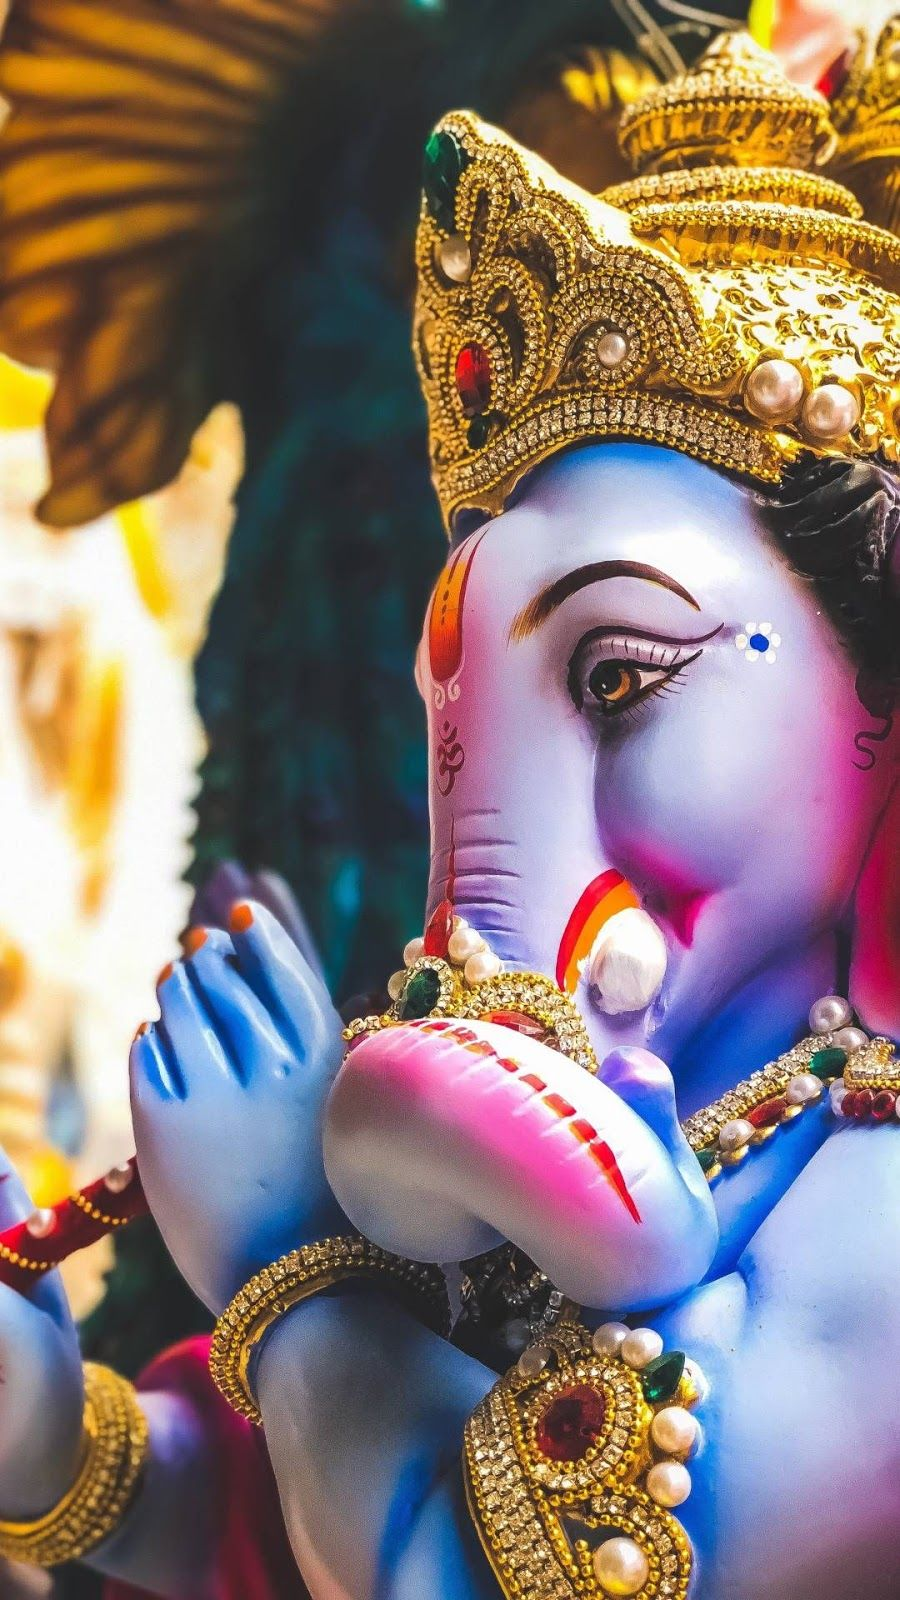 310 Ganpati Bappa Images Free Download Full Hd Pics Photo Gallery And Wallpapers 2019 In 2020 Happy Ganesh Chaturthi Images Ganesh Wallpaper Lord Vishnu Wallpapers